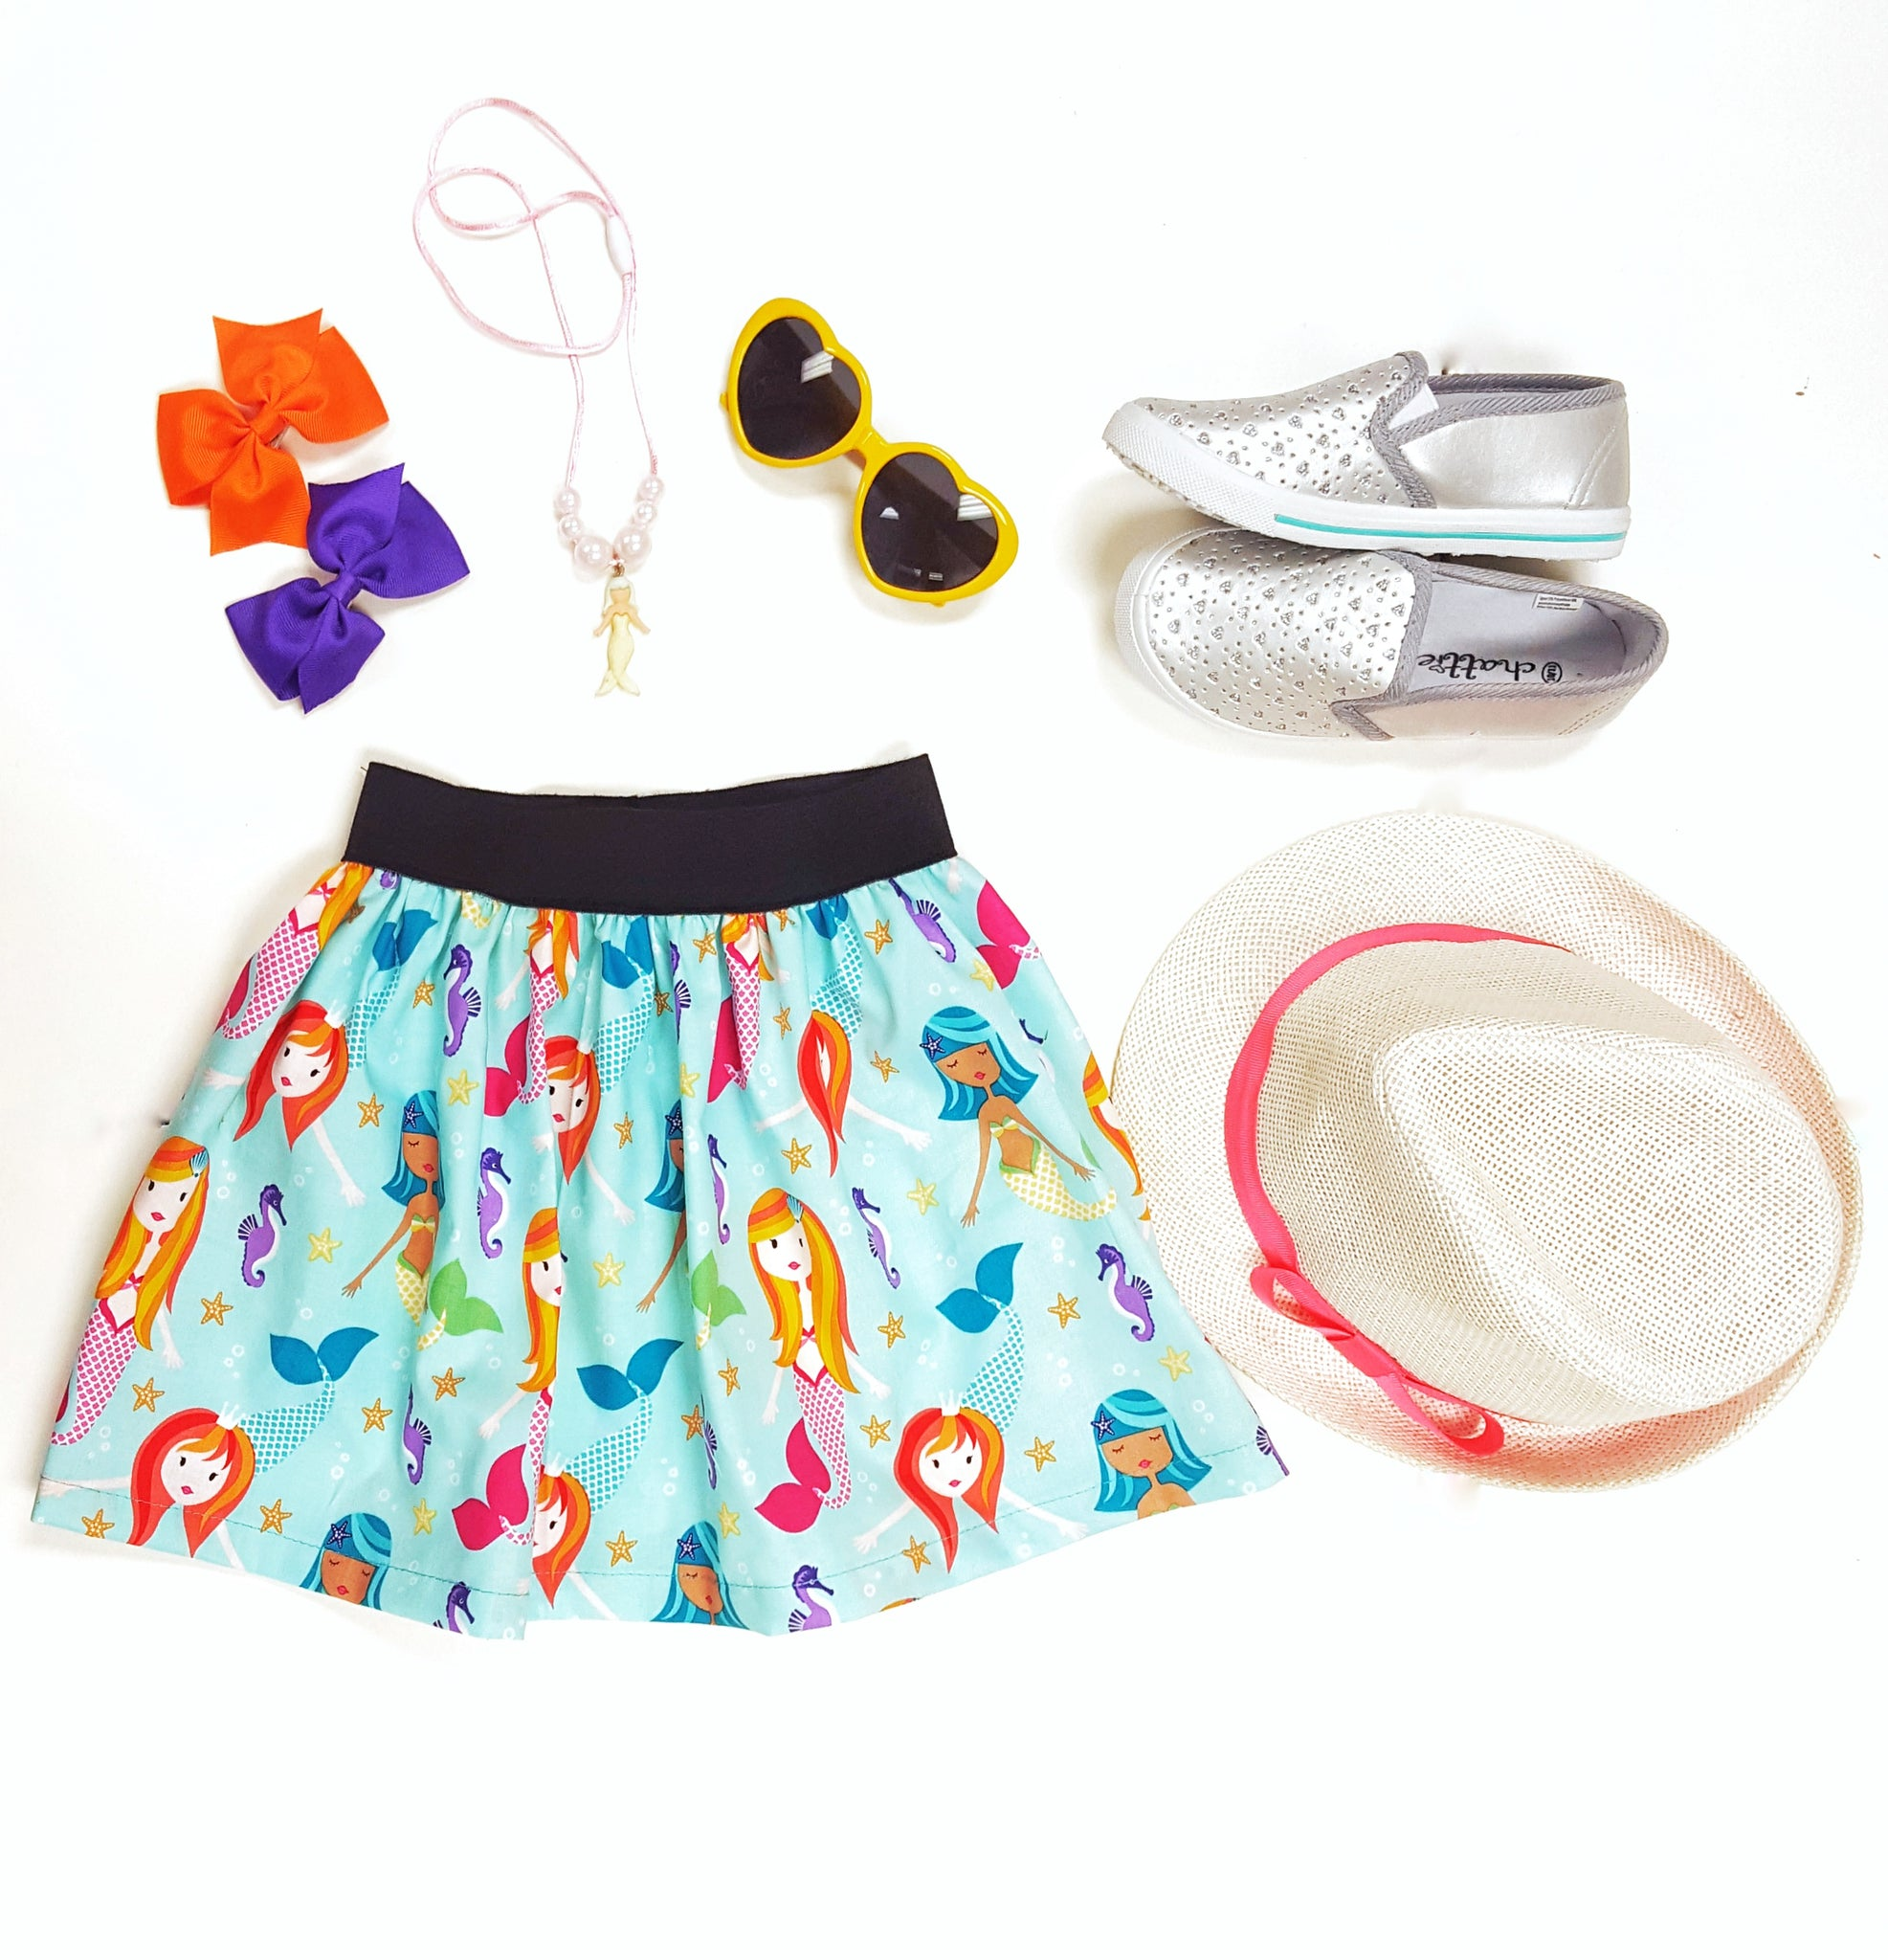 Mermaids Under the sea Skirt